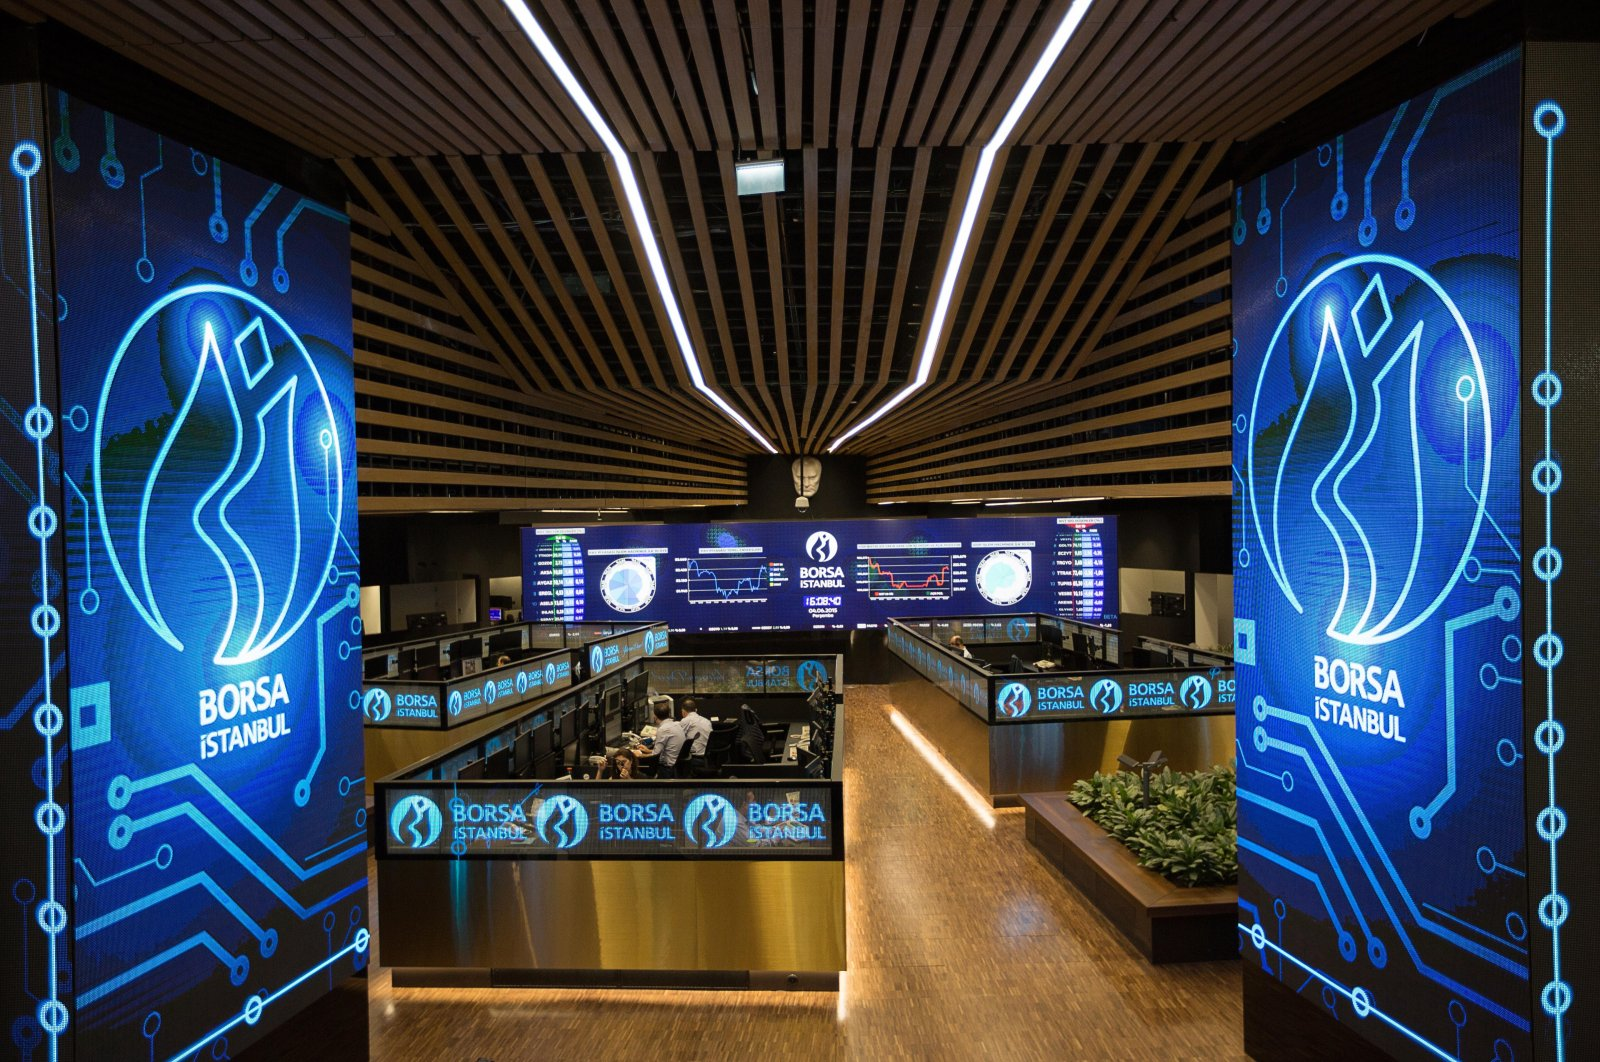 A general view shows the trading floor at the Borsa Istanbul in Istanbul, Turkey, July 23, 2020. (IHA Photo)